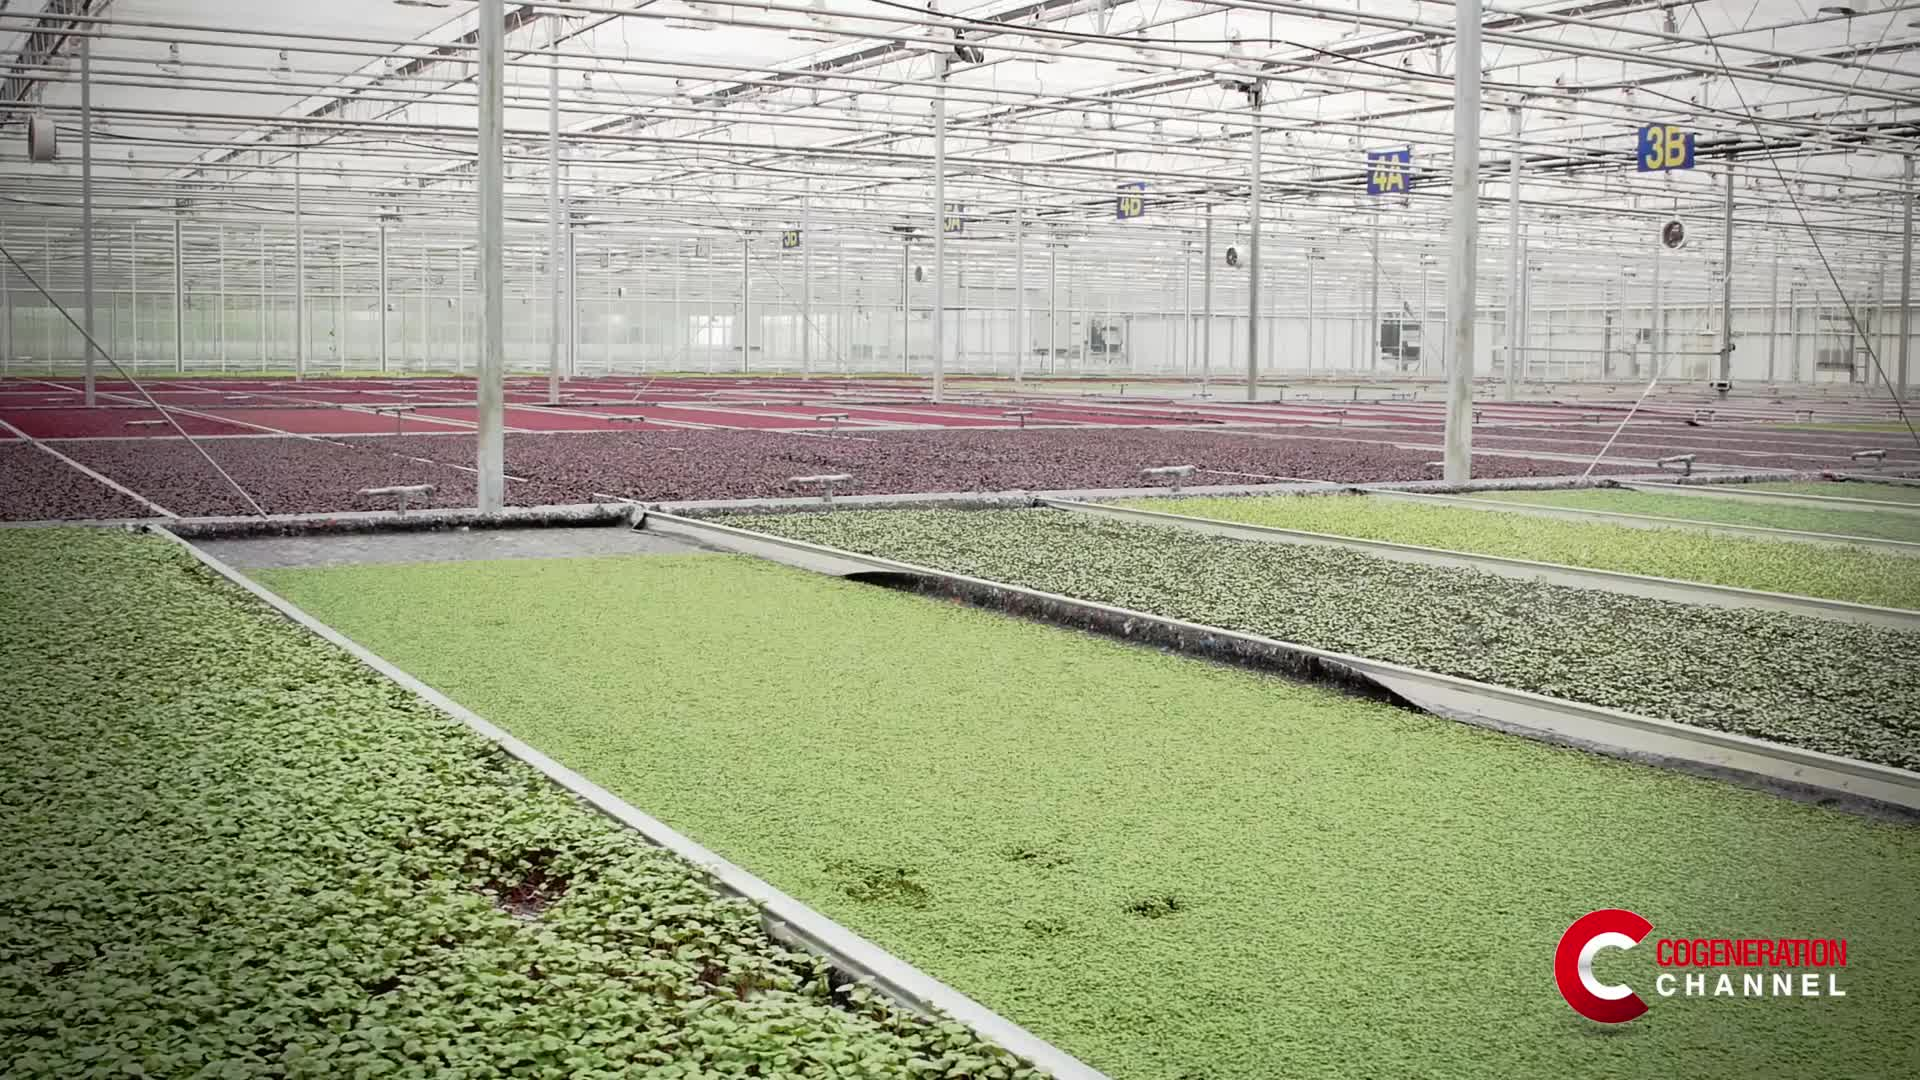 UK: 1.5 MW CHP plant sustainably heats greenhouse for edible flowers